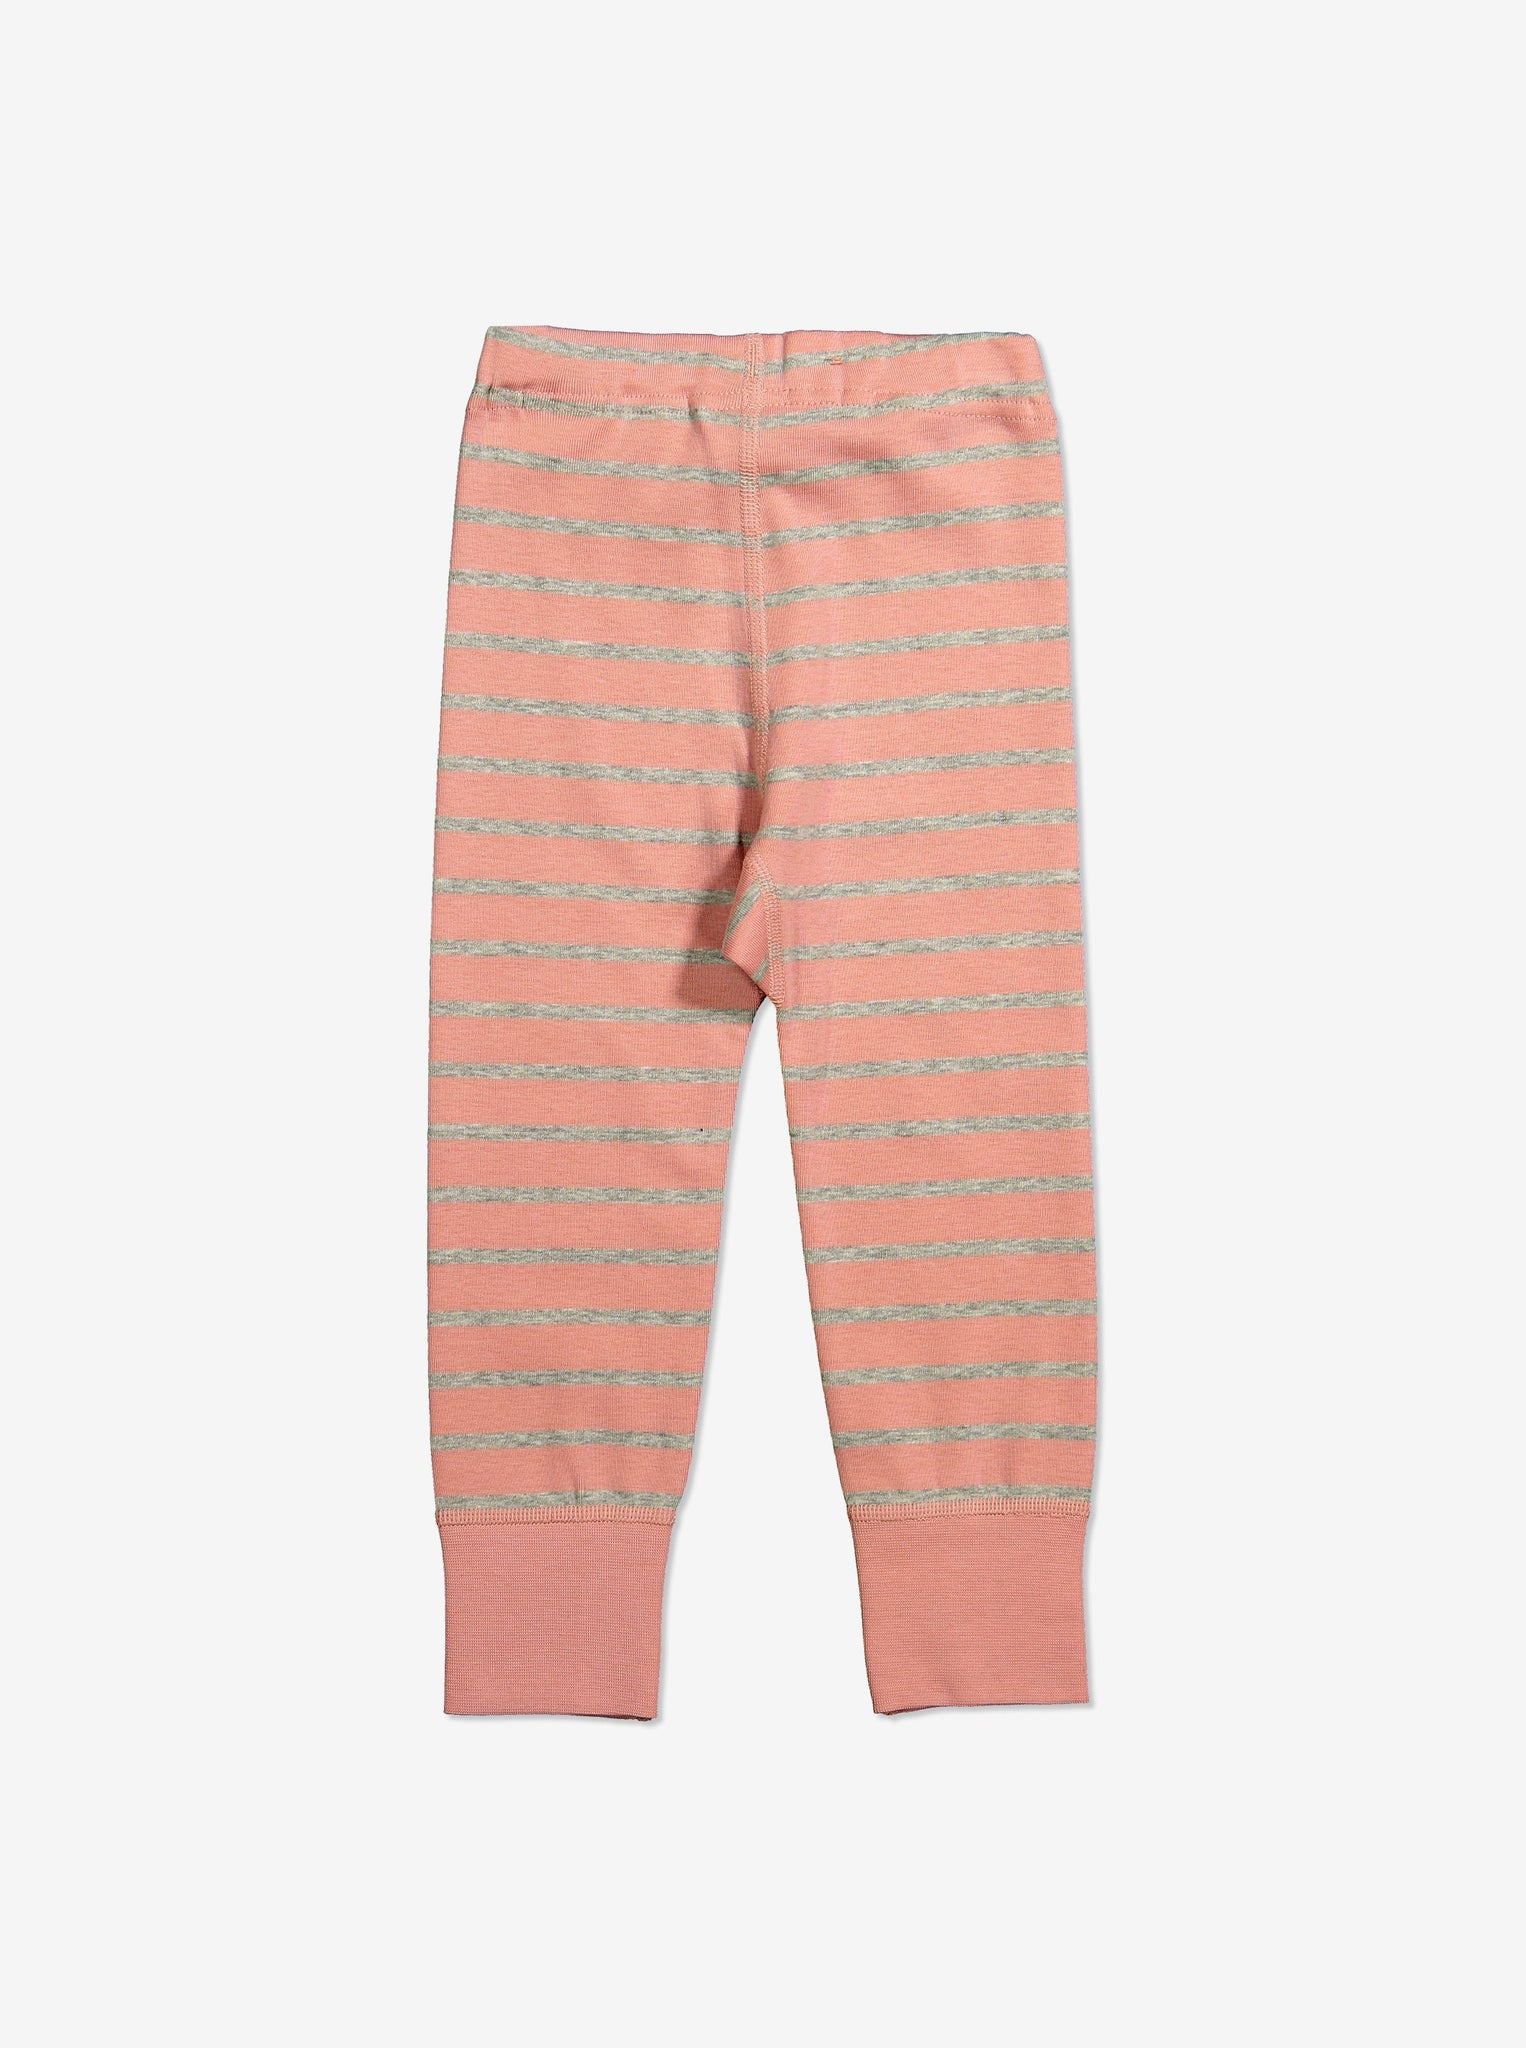 Striped Kids Leggings-Girl-1-6y-Pink